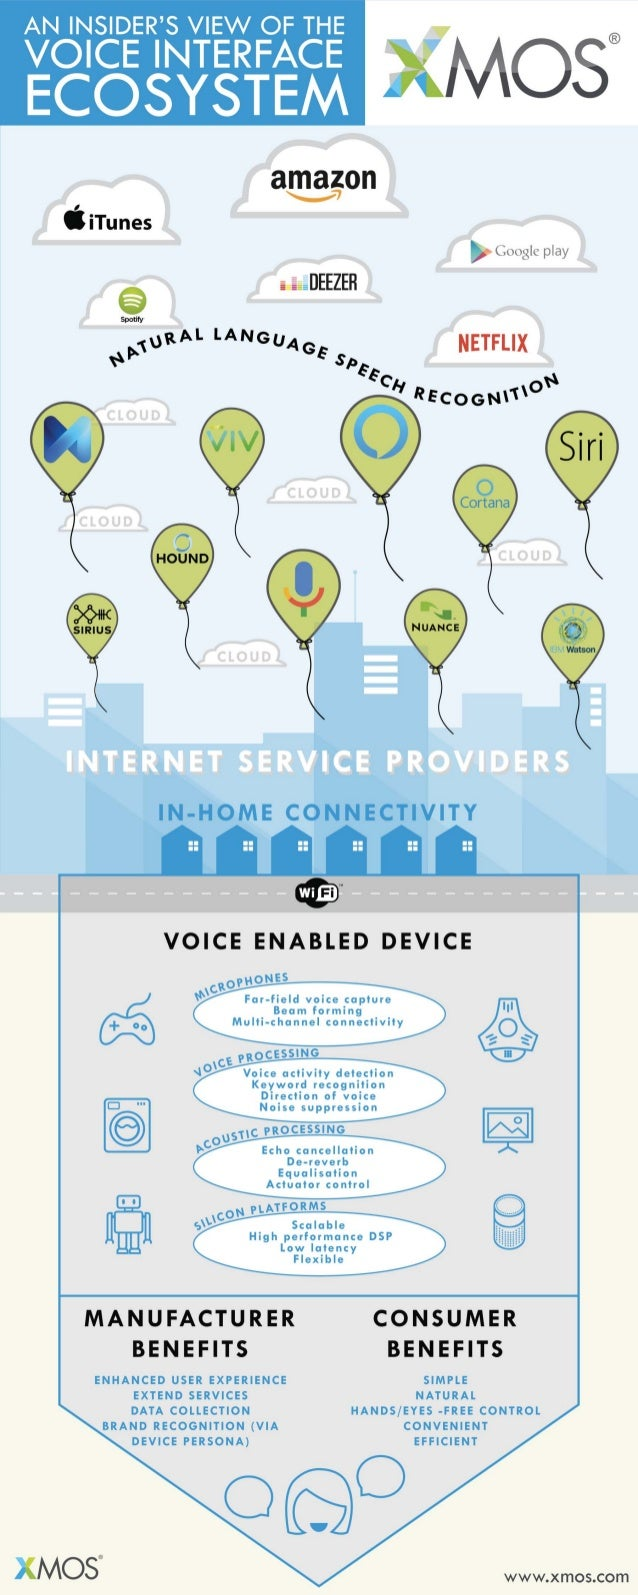 XMOS Voice Interface Ecosystem infographic